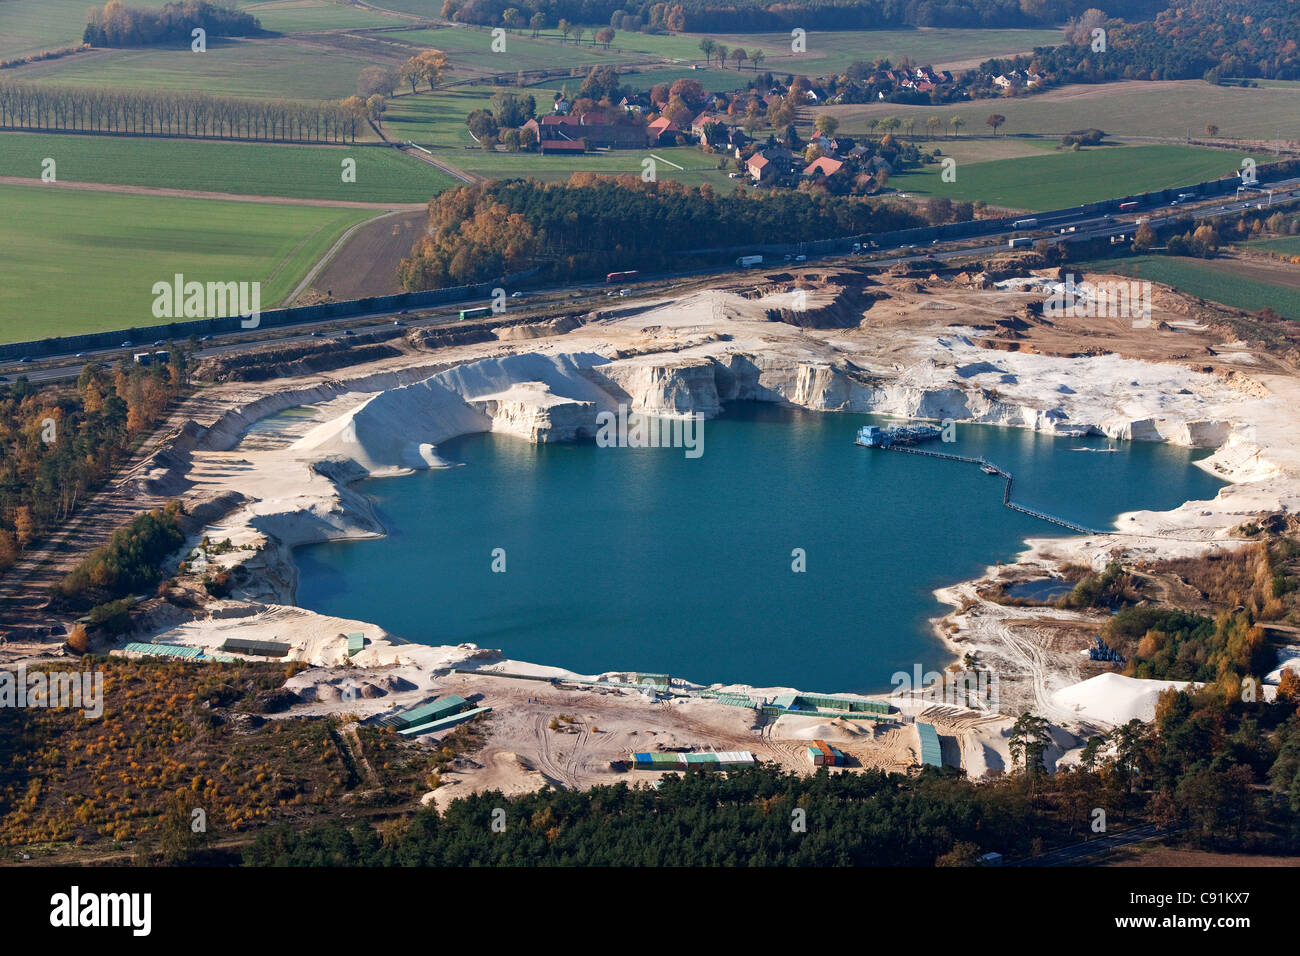 aerial photo of a silica sand pit near Braunschweig on the A2 autobahn, Braunschweig, Lower Saxony, Germany Stock Photo